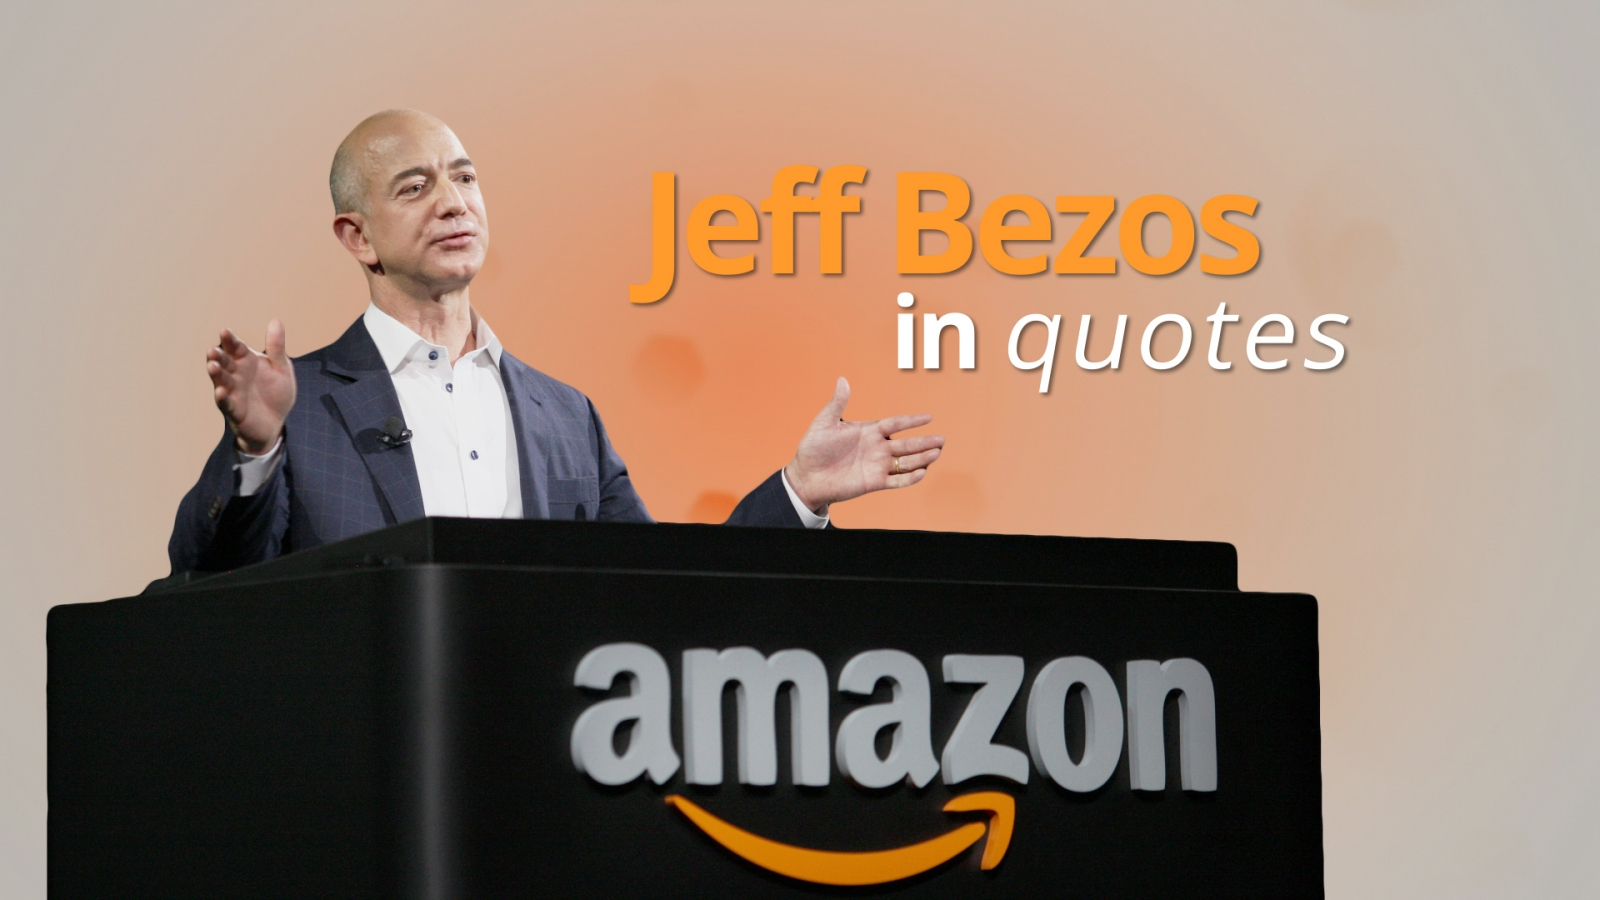 amazon-founder-jeff-bezos-in-quotes